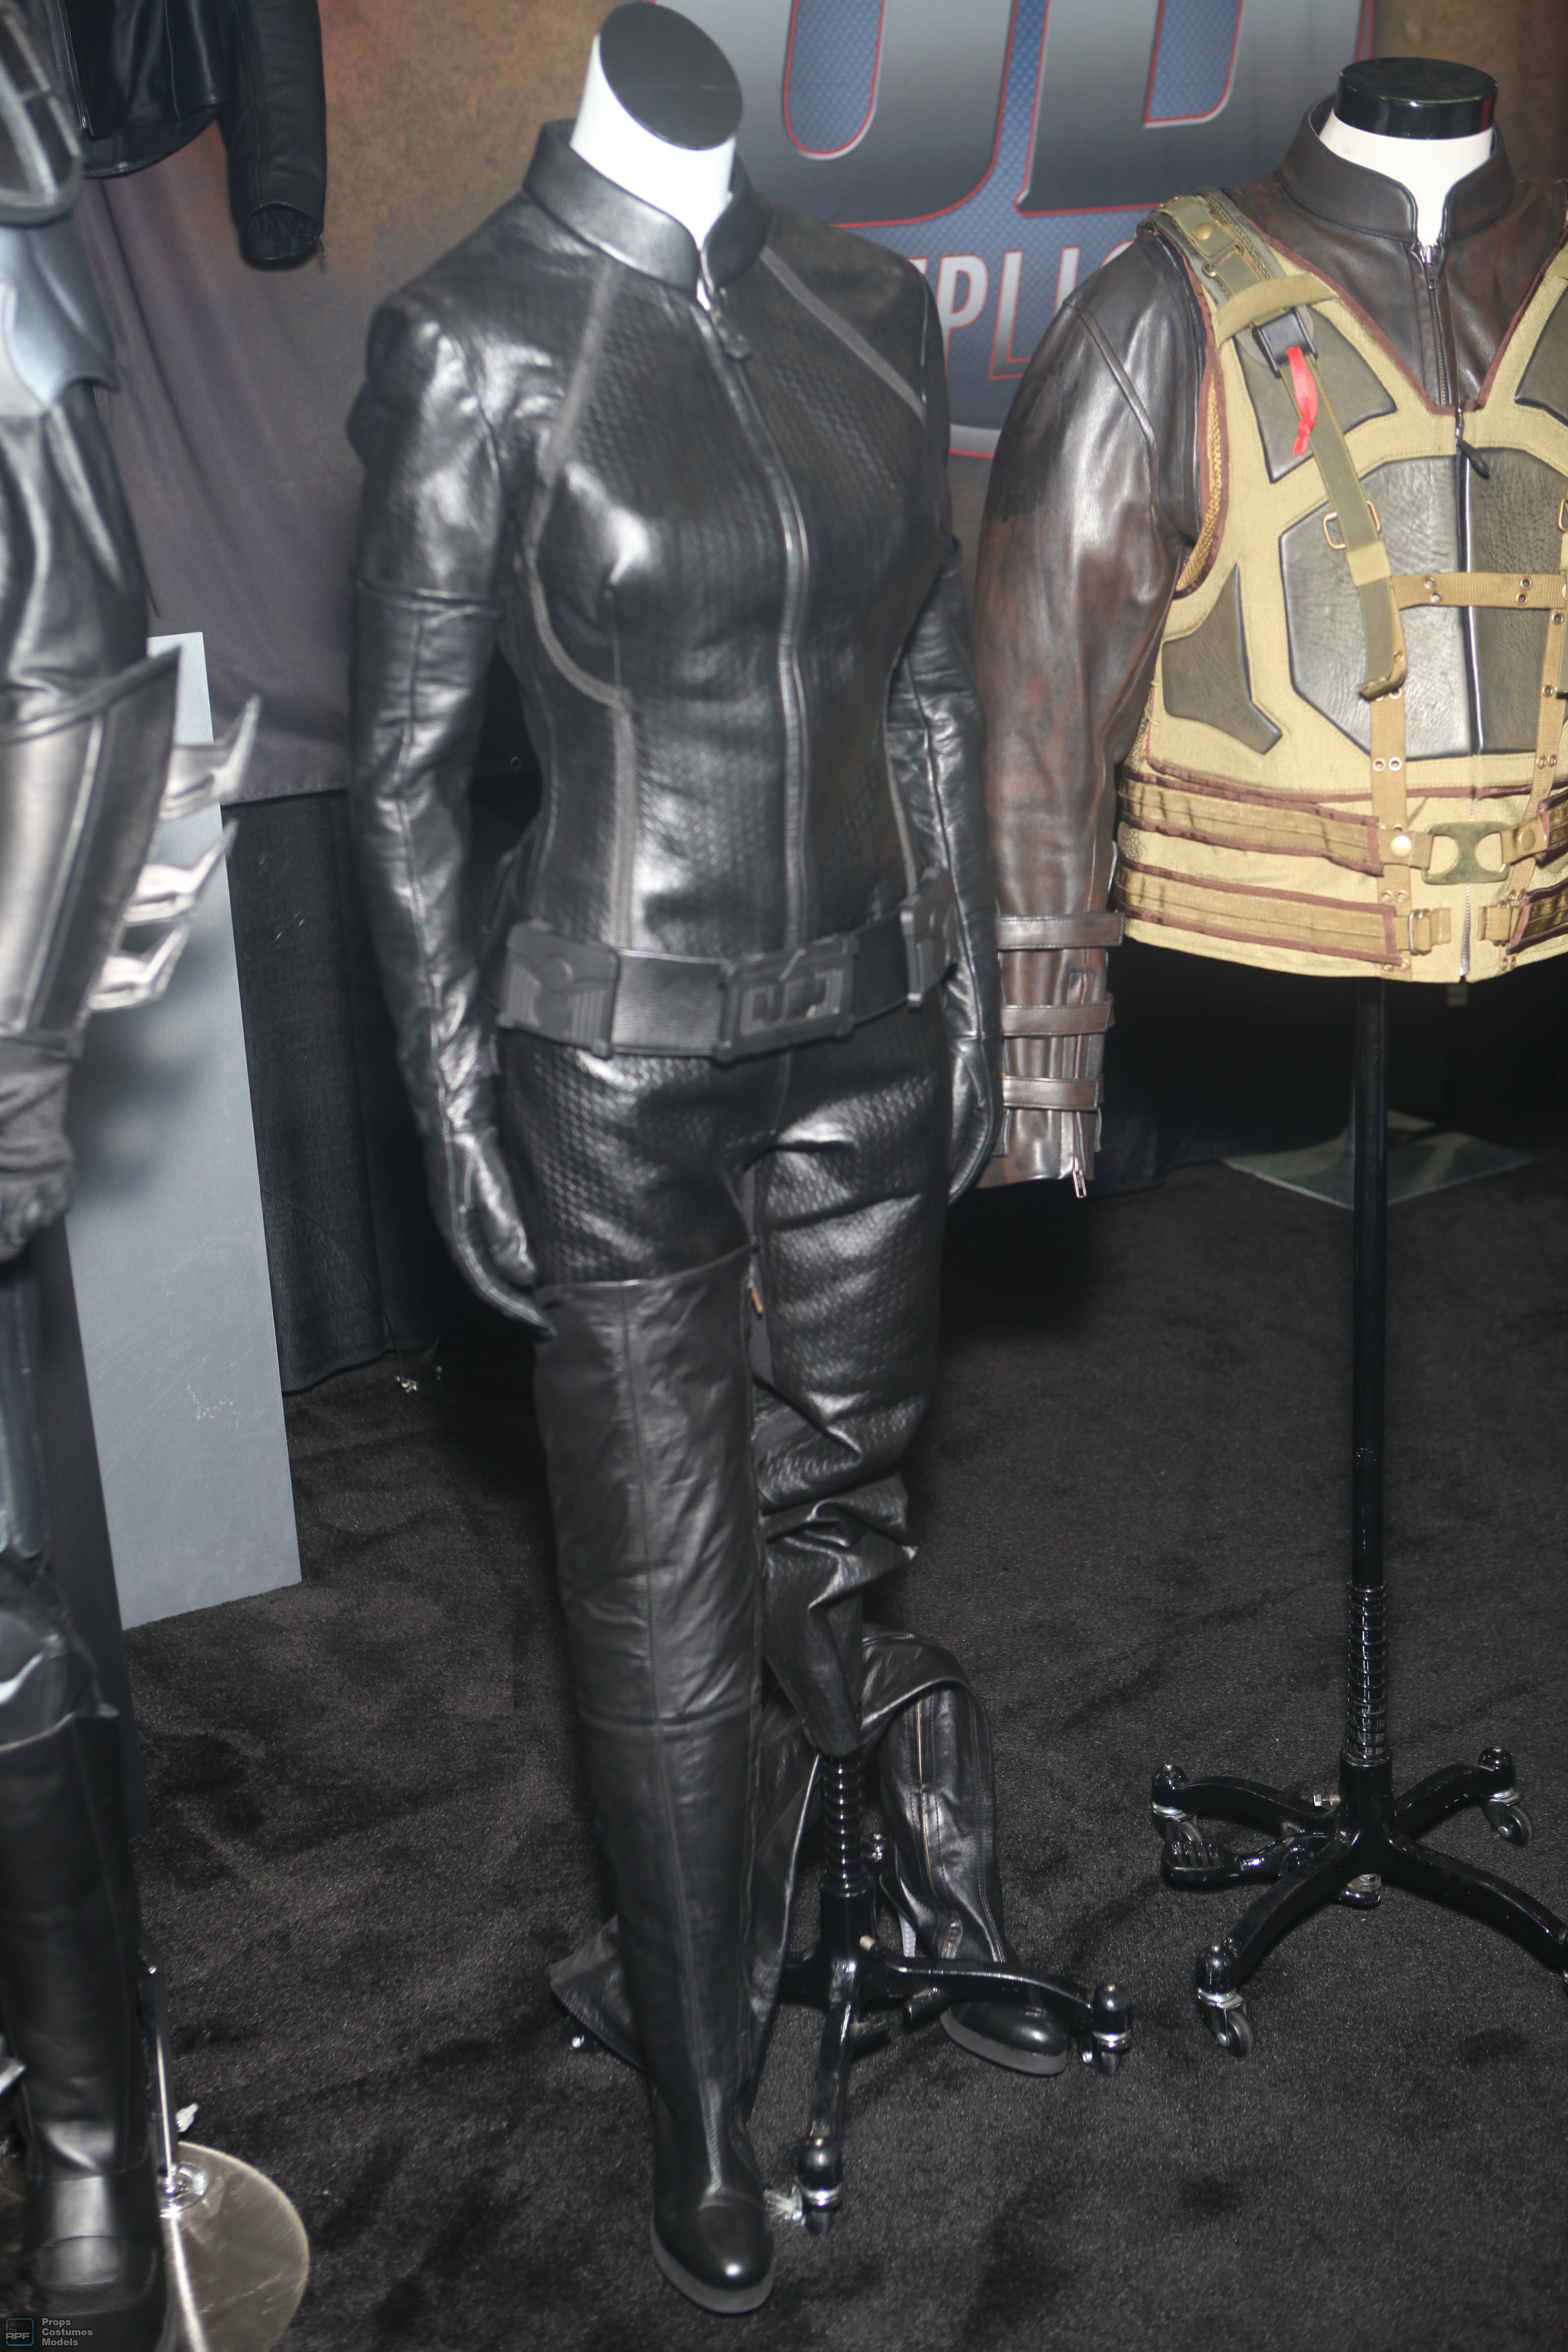 UD Replicas The Dark Knight Rises Catwoman Outfit